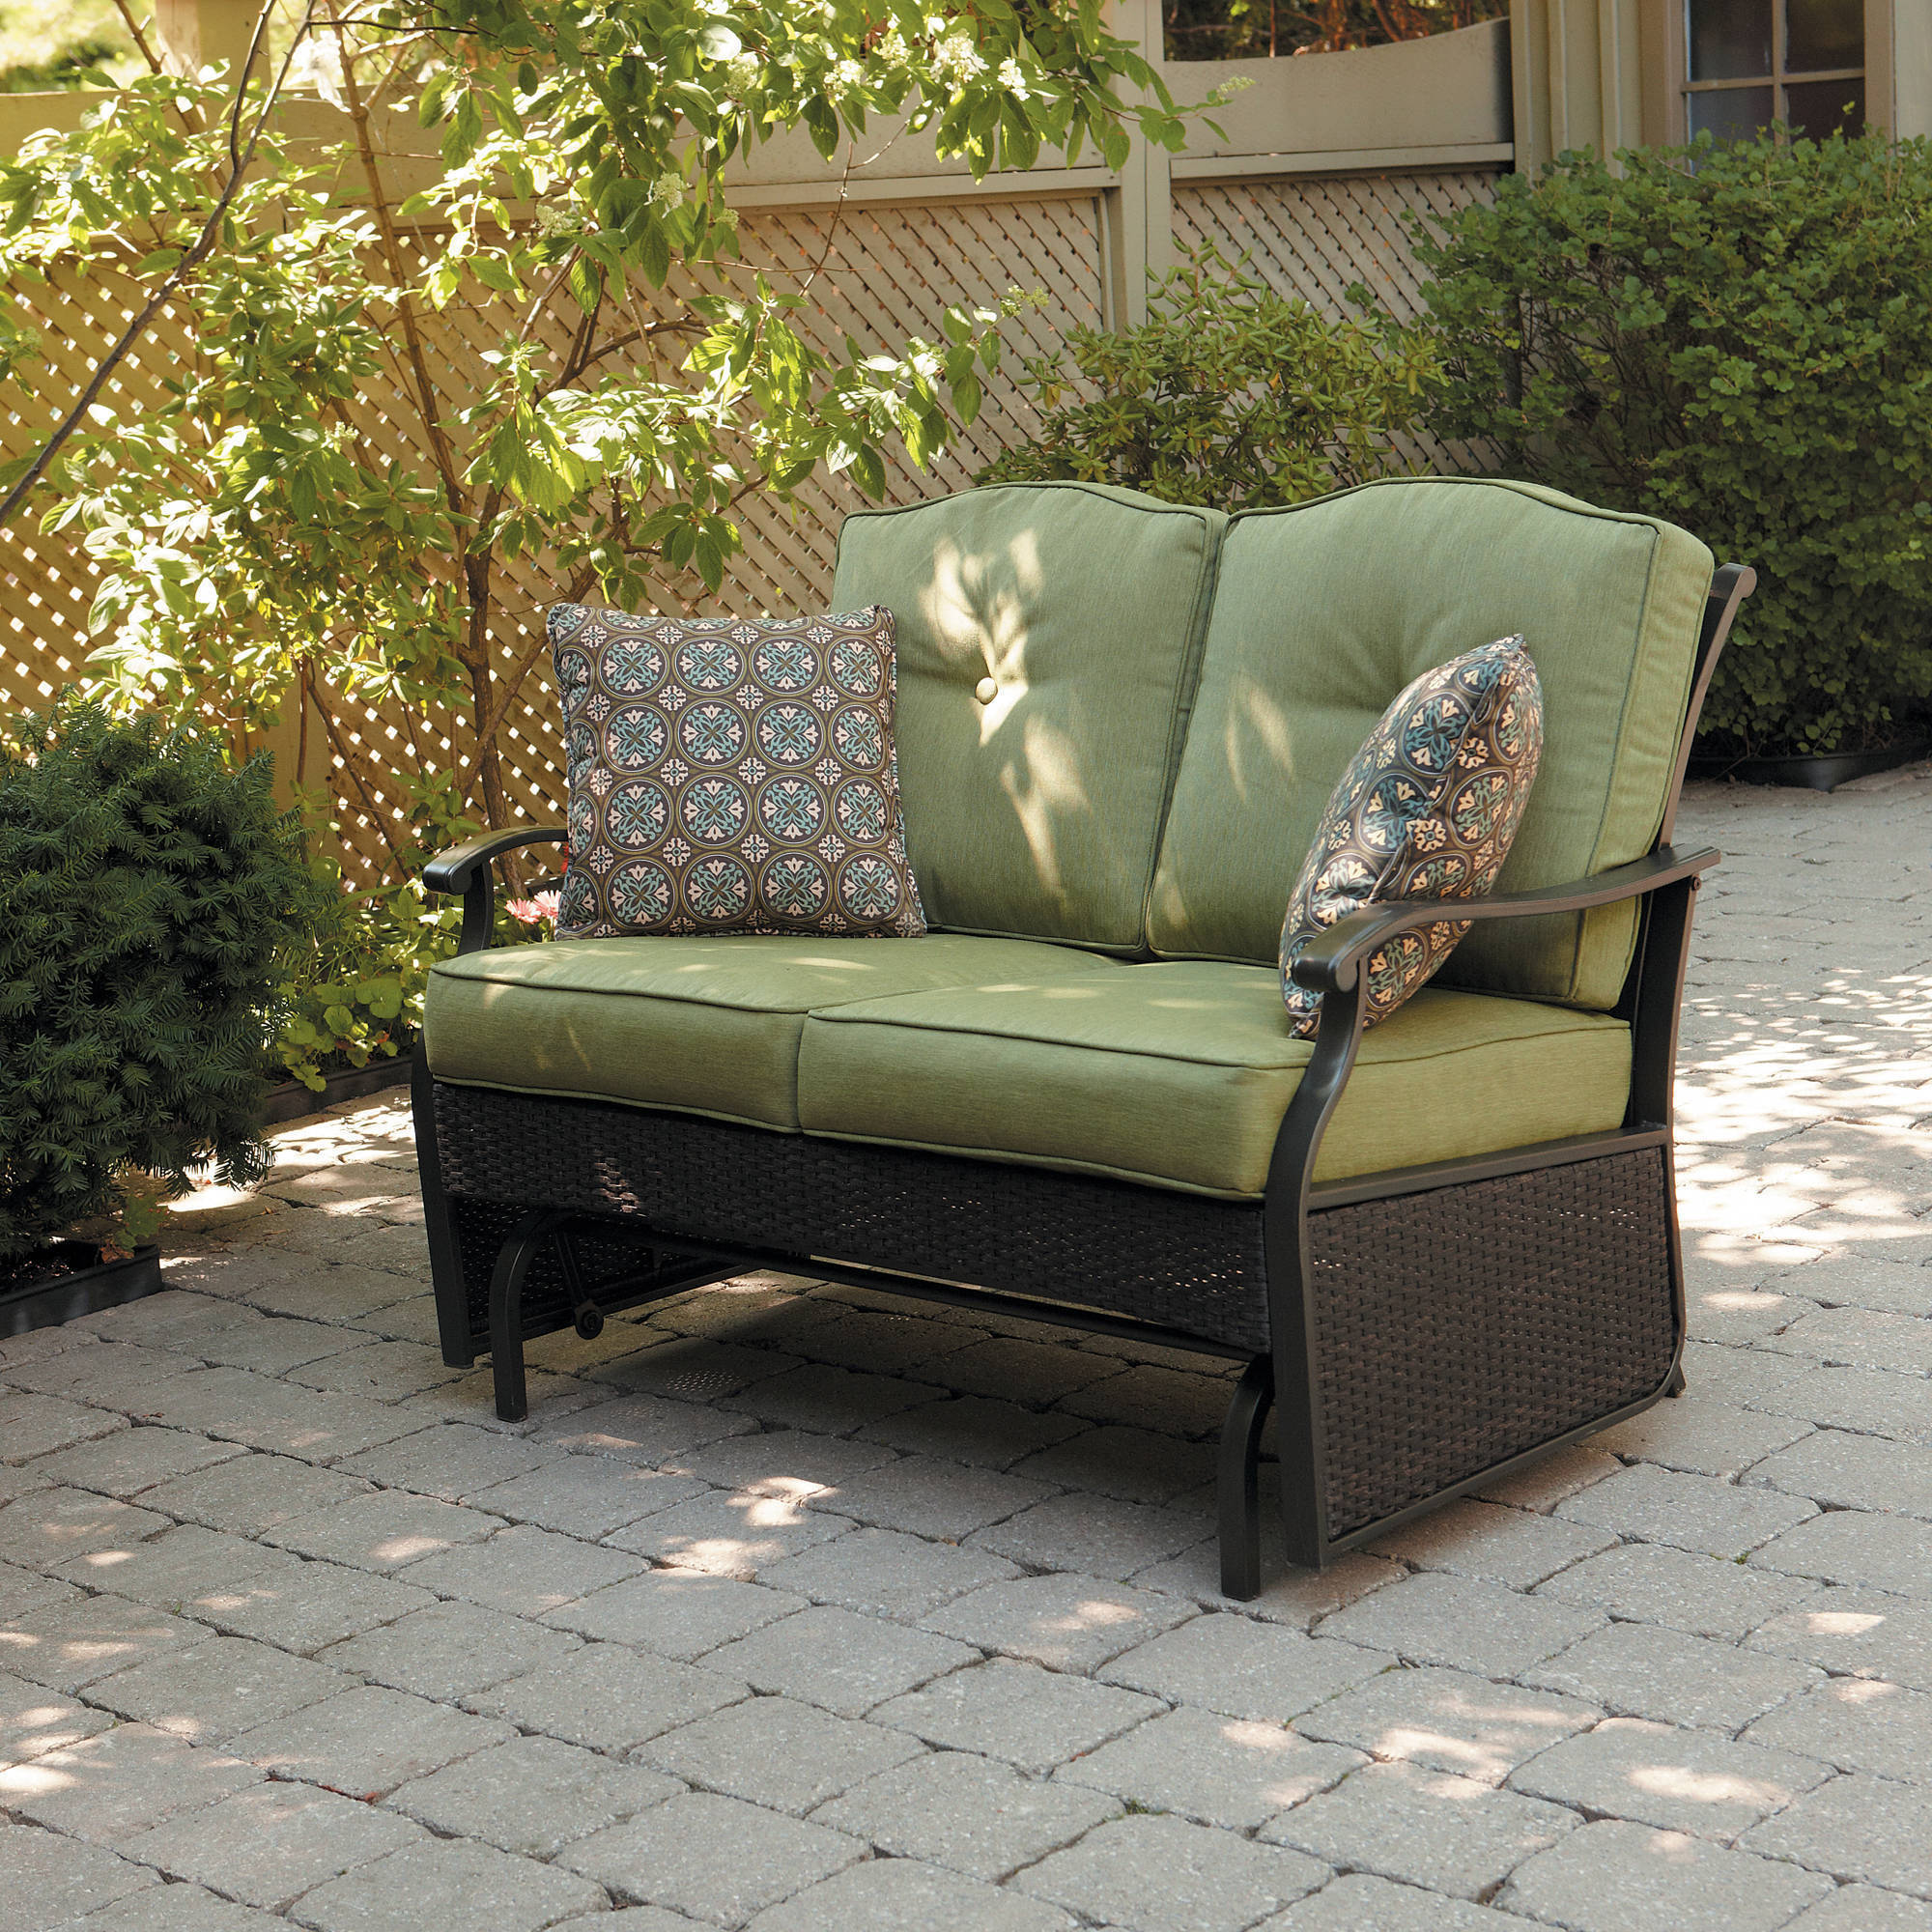 Details About Better Homes And Gardens Providence Outdoor Glider Bench Green Seats 2